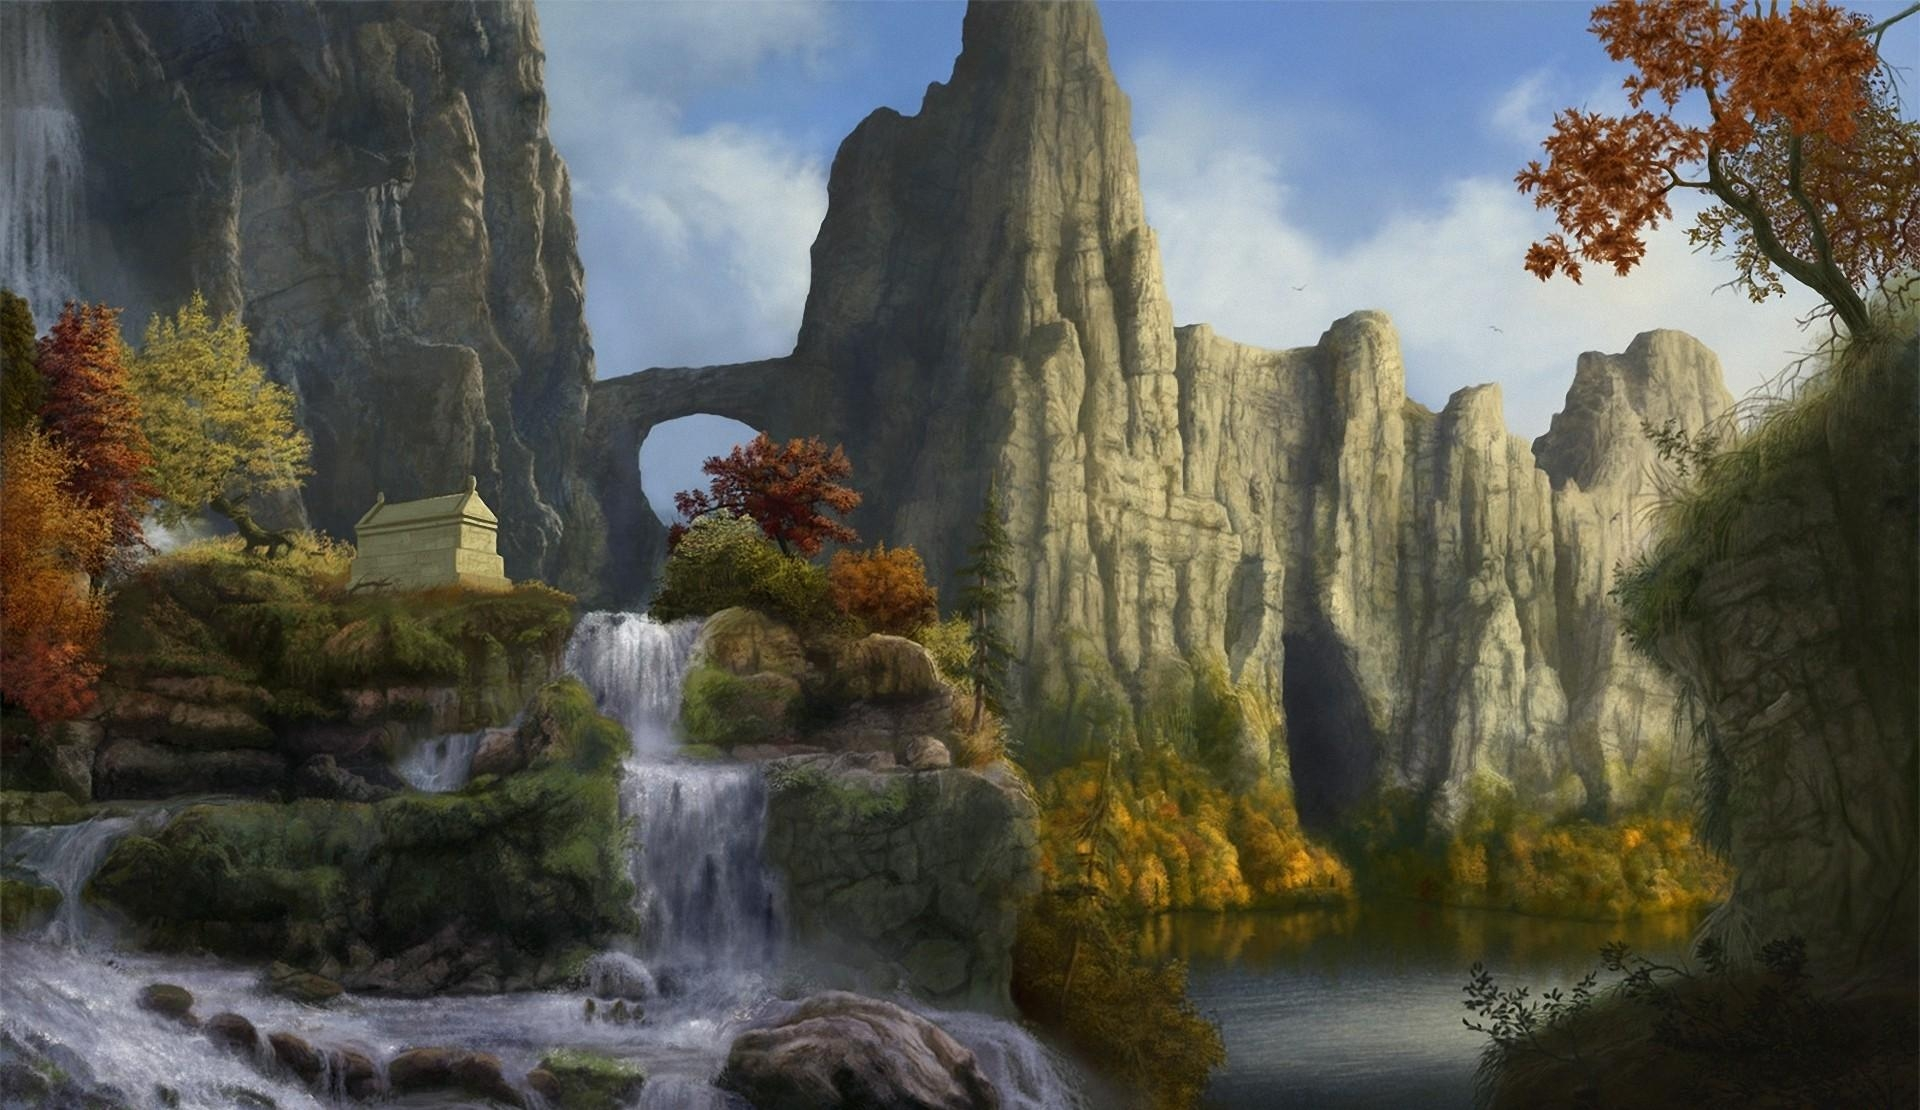 115758 download wallpaper Fantasy, Rocks, Waterfall, Sky, Nature, Trees screensavers and pictures for free